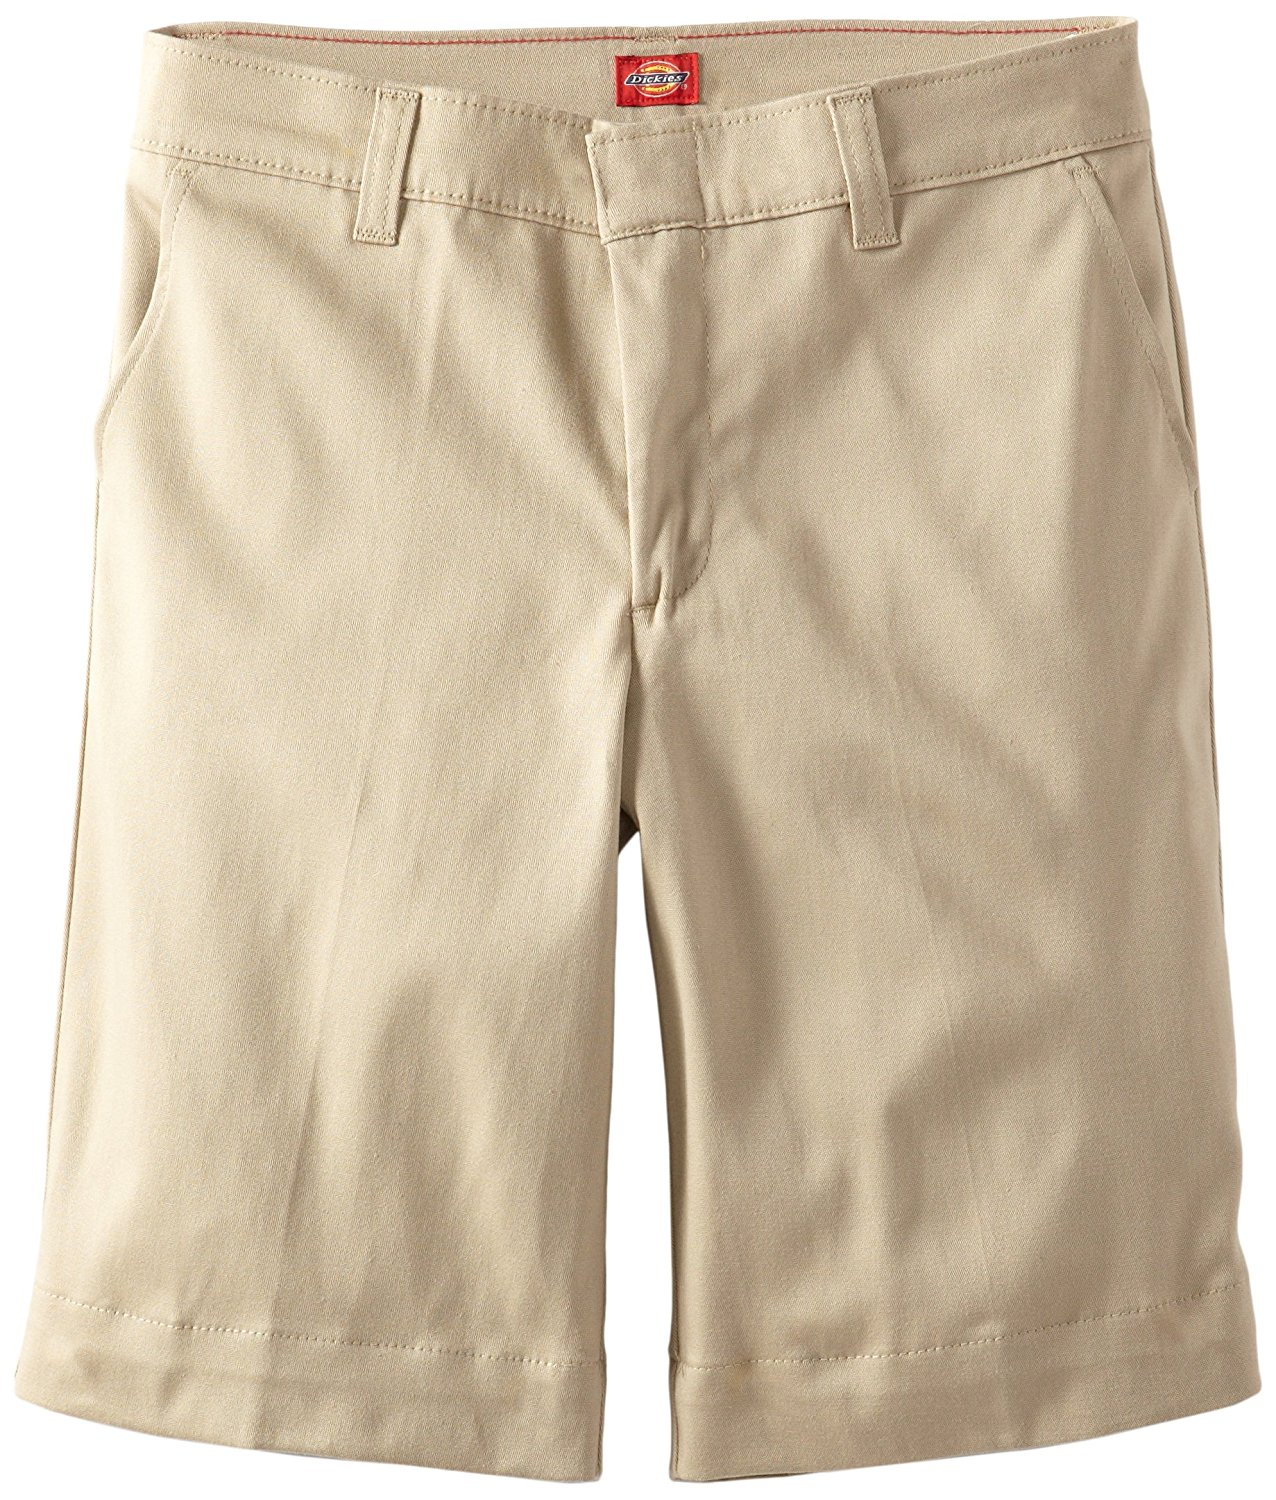 dickies-bermuda-shorts-in-girl-sizes-summer-camps-for-teen-girls